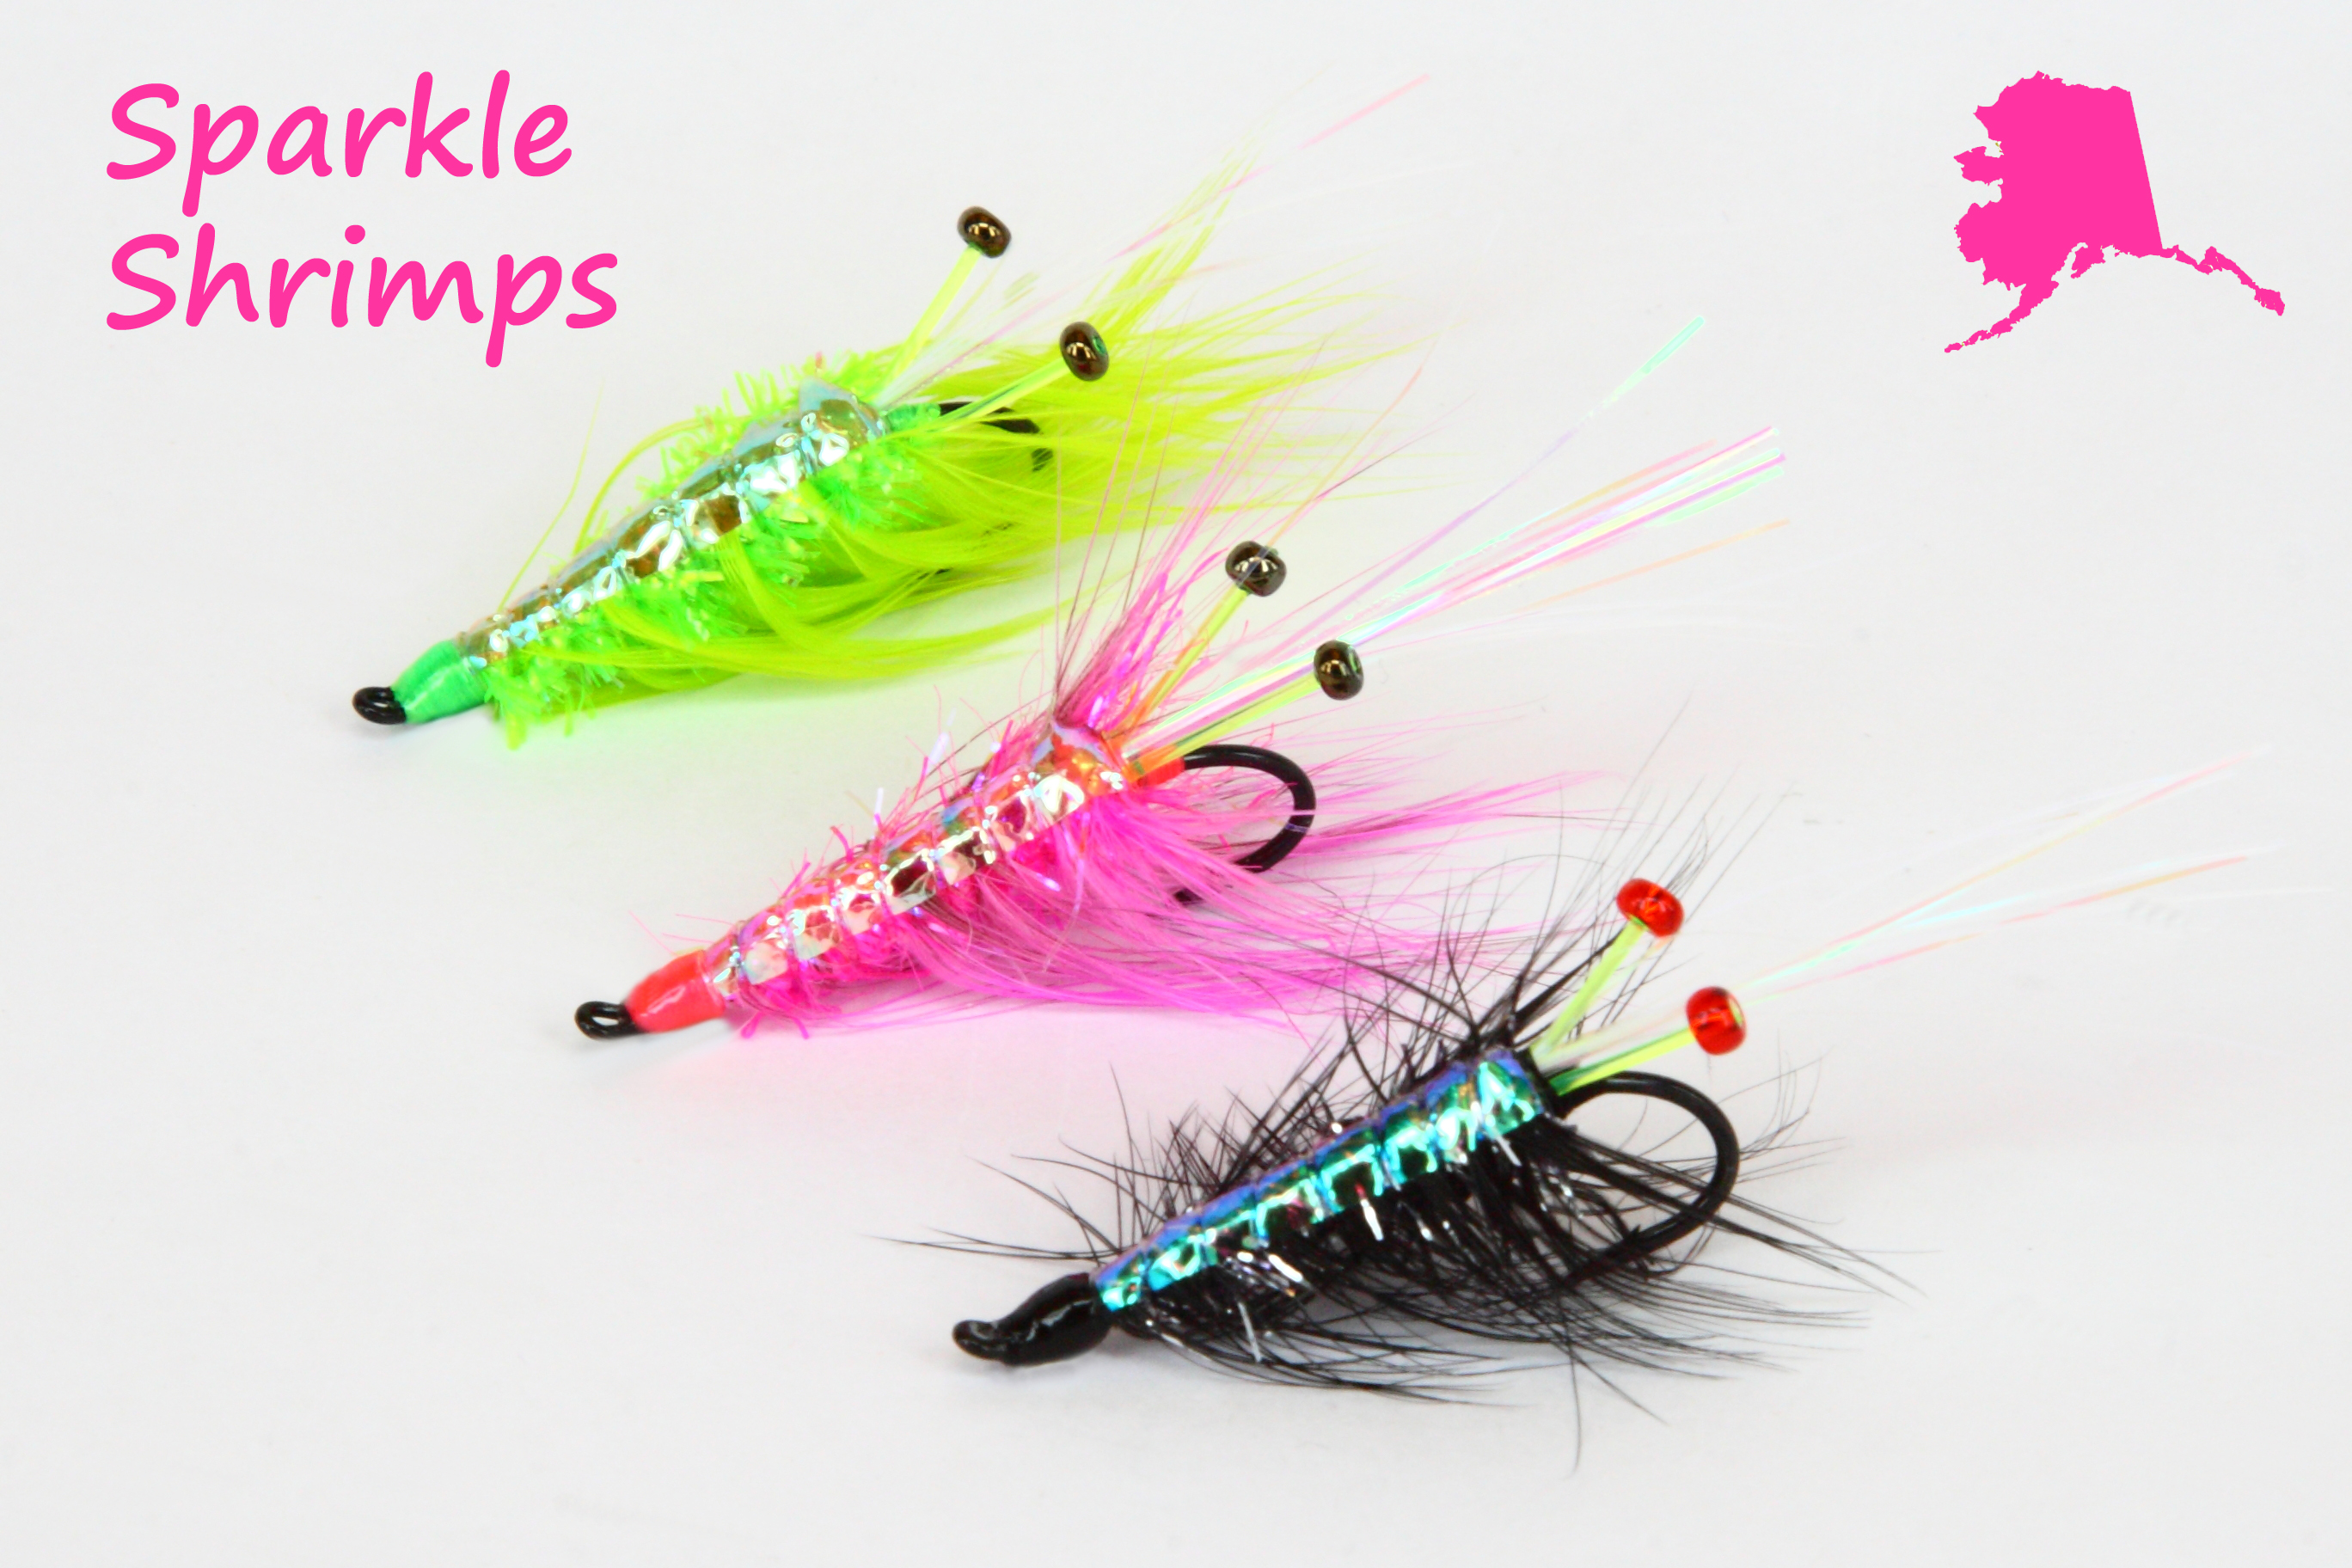 Sparkle Shrimps FDG copy.jpg